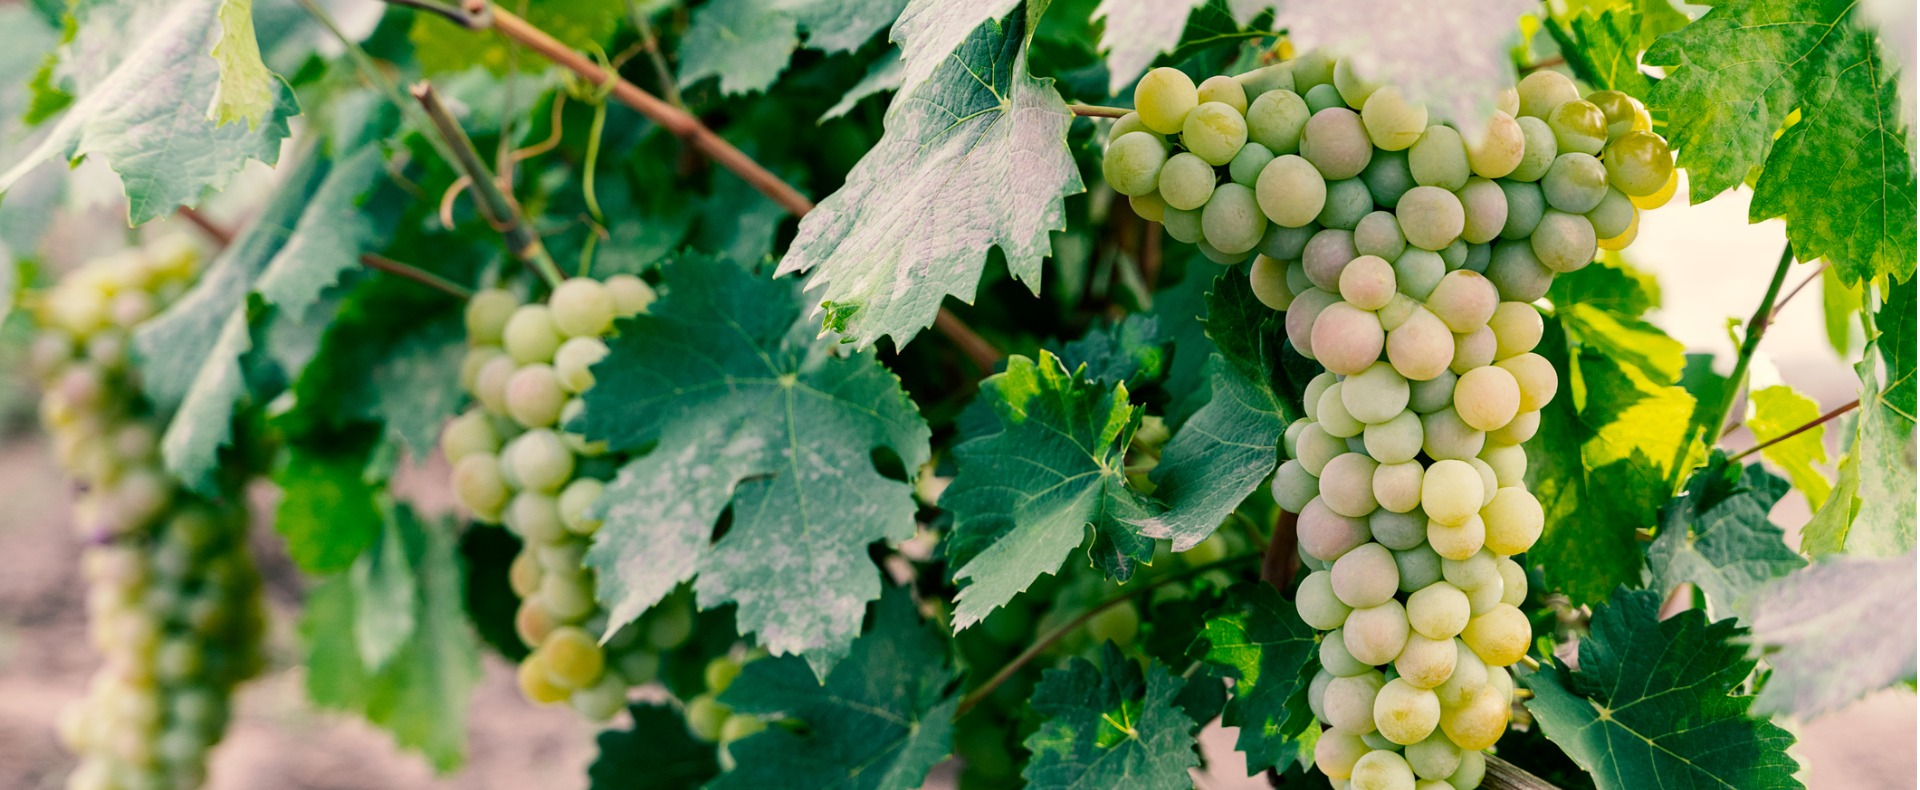 Pour Another Glass: How Customer Loyalty Can Move The Wine Industry Forward